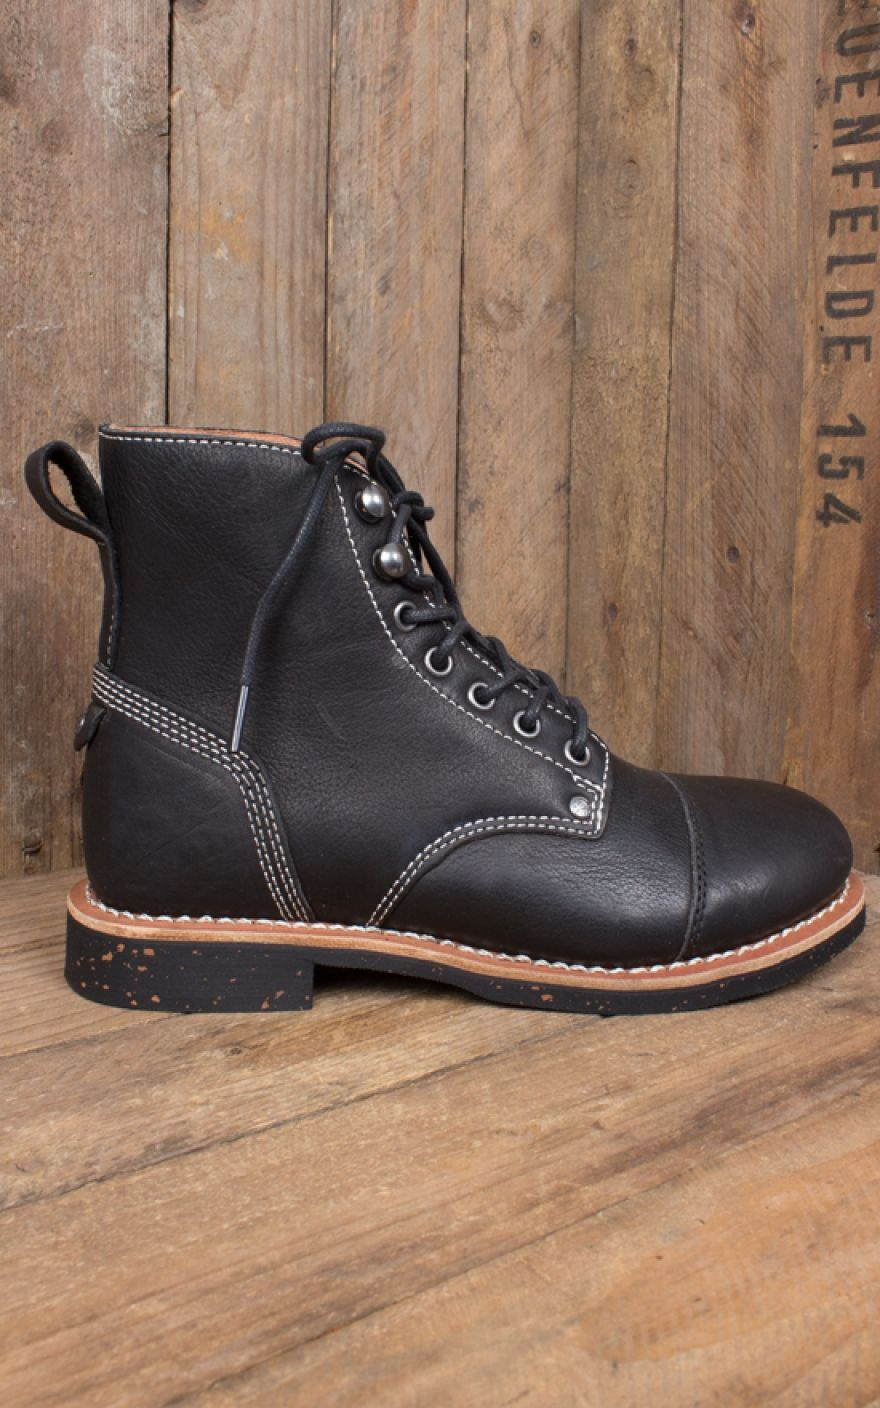 Dickies Boots Knoxville Rockabilly Rules